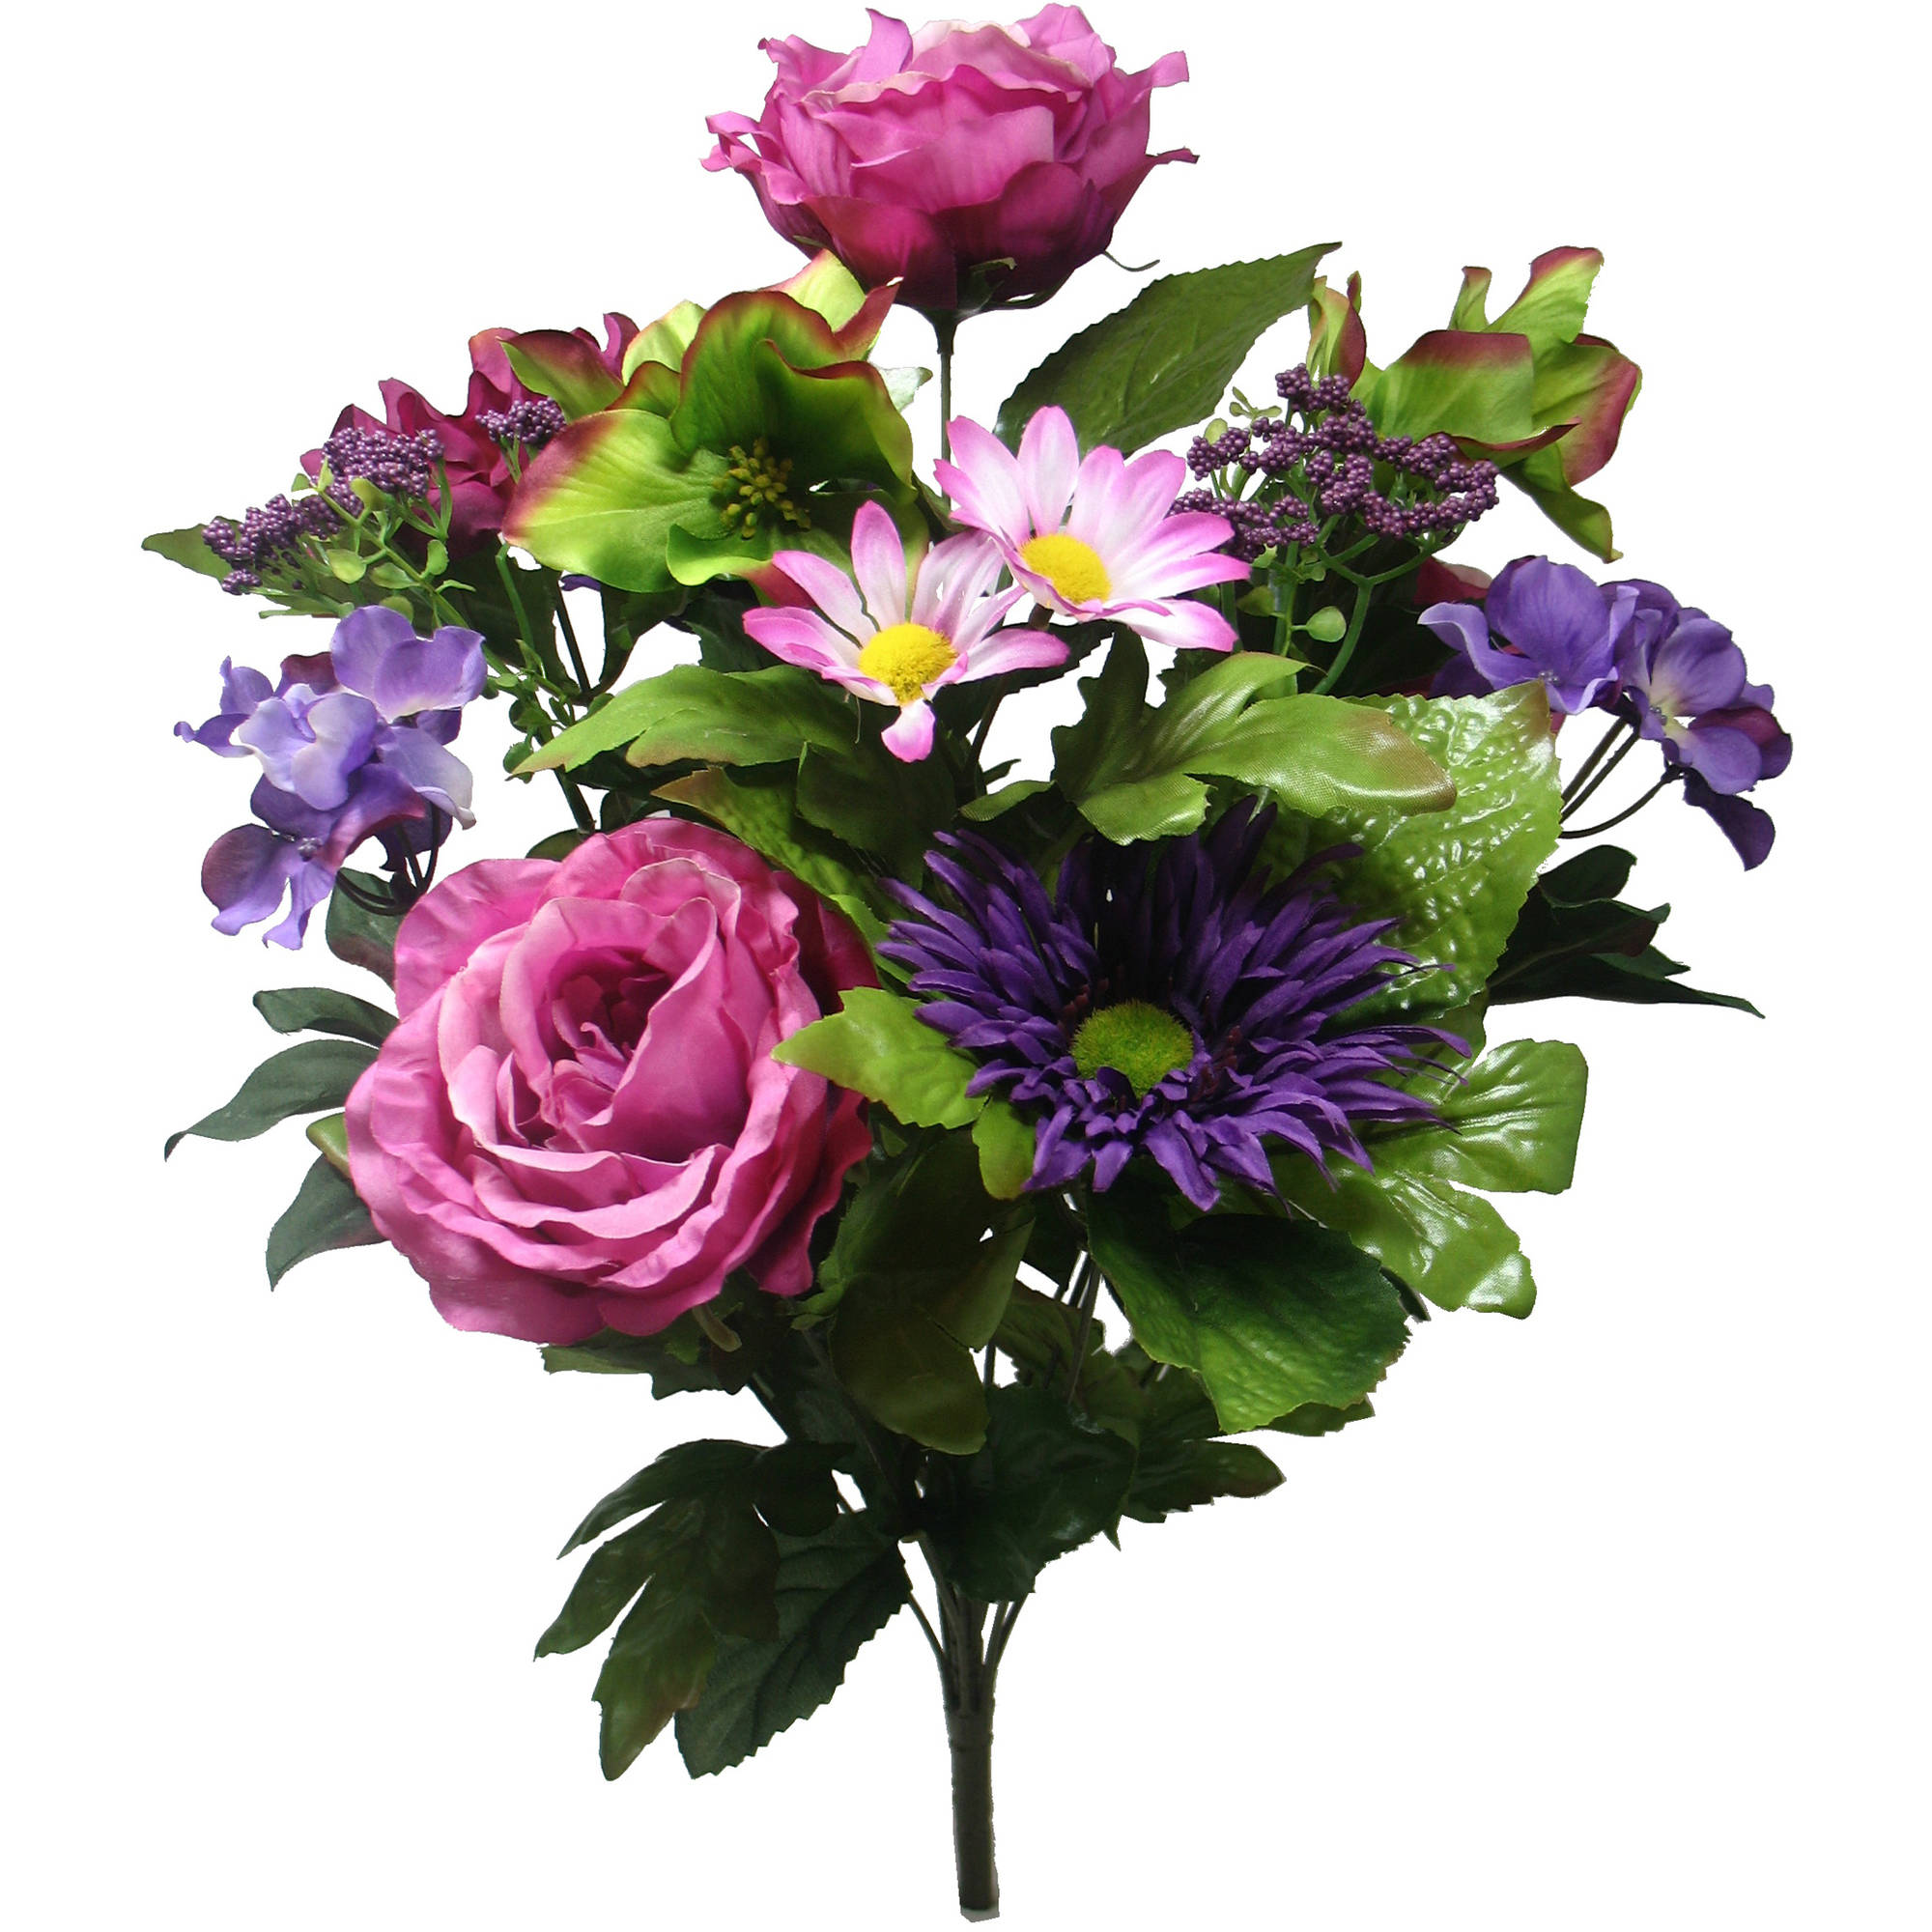 Artificial Flowers - Walmart.com